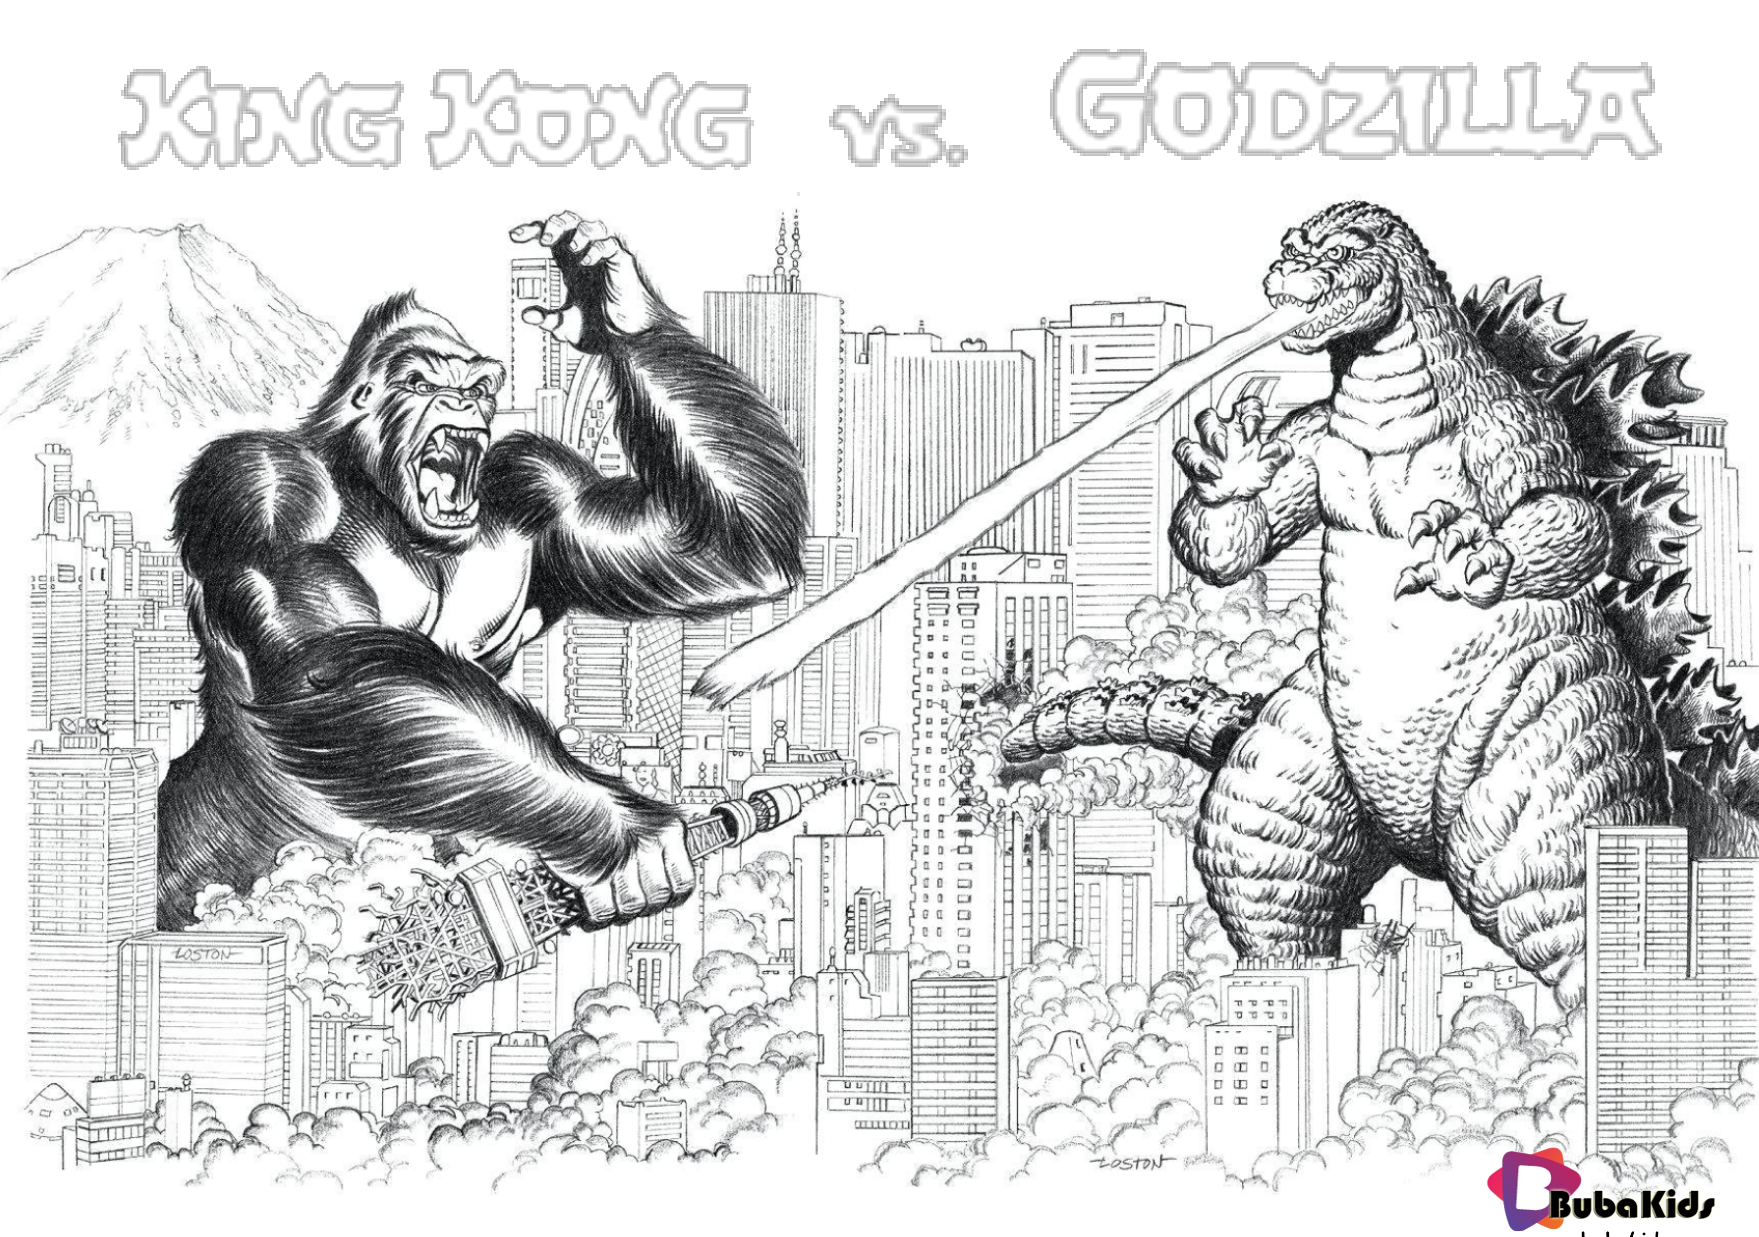 30 Wonderful Photo Of Godzilla Coloring Pages Albanysinsanity Com Coloring Pages Coloring Book Pages Animal Coloring Pages